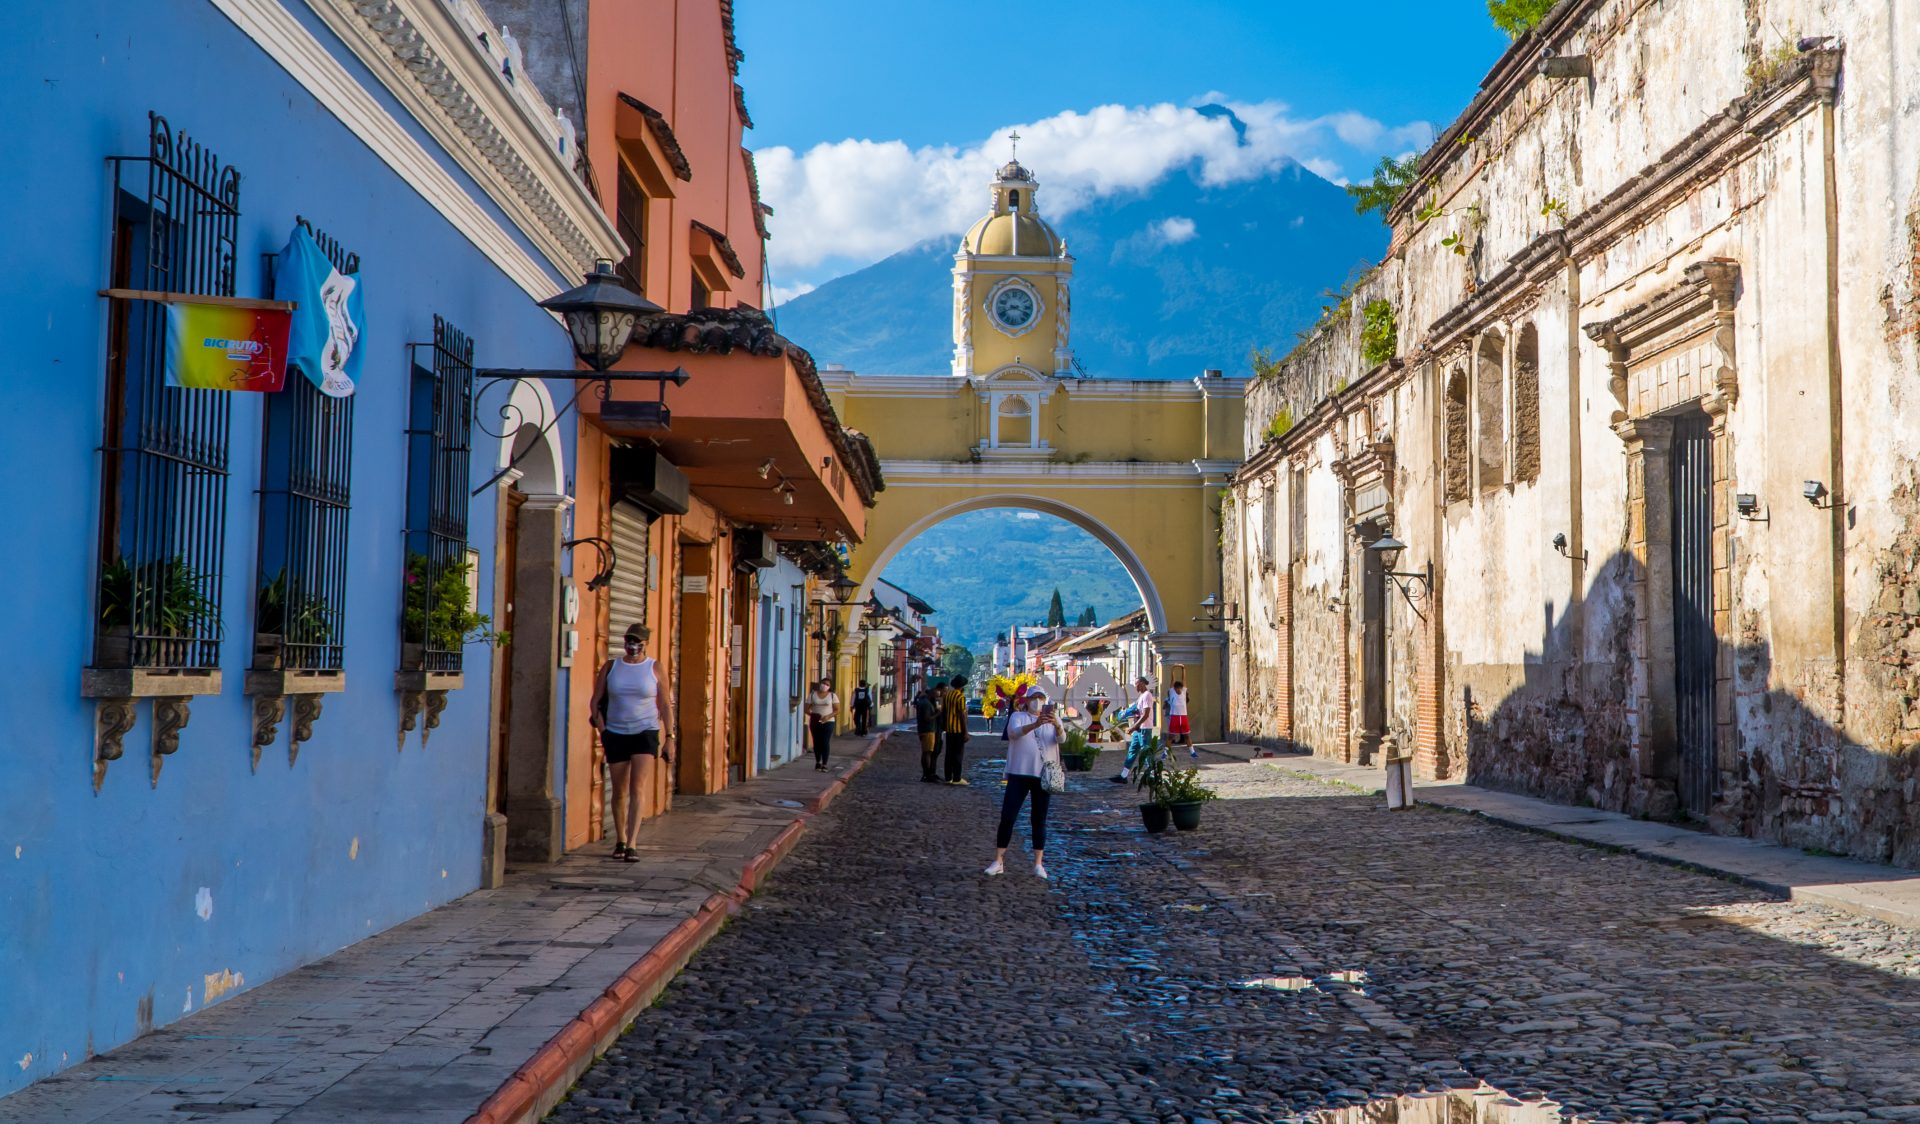 Things to do in Antigua Guateamal - Street photography of tourists at Santa Catalina Arch